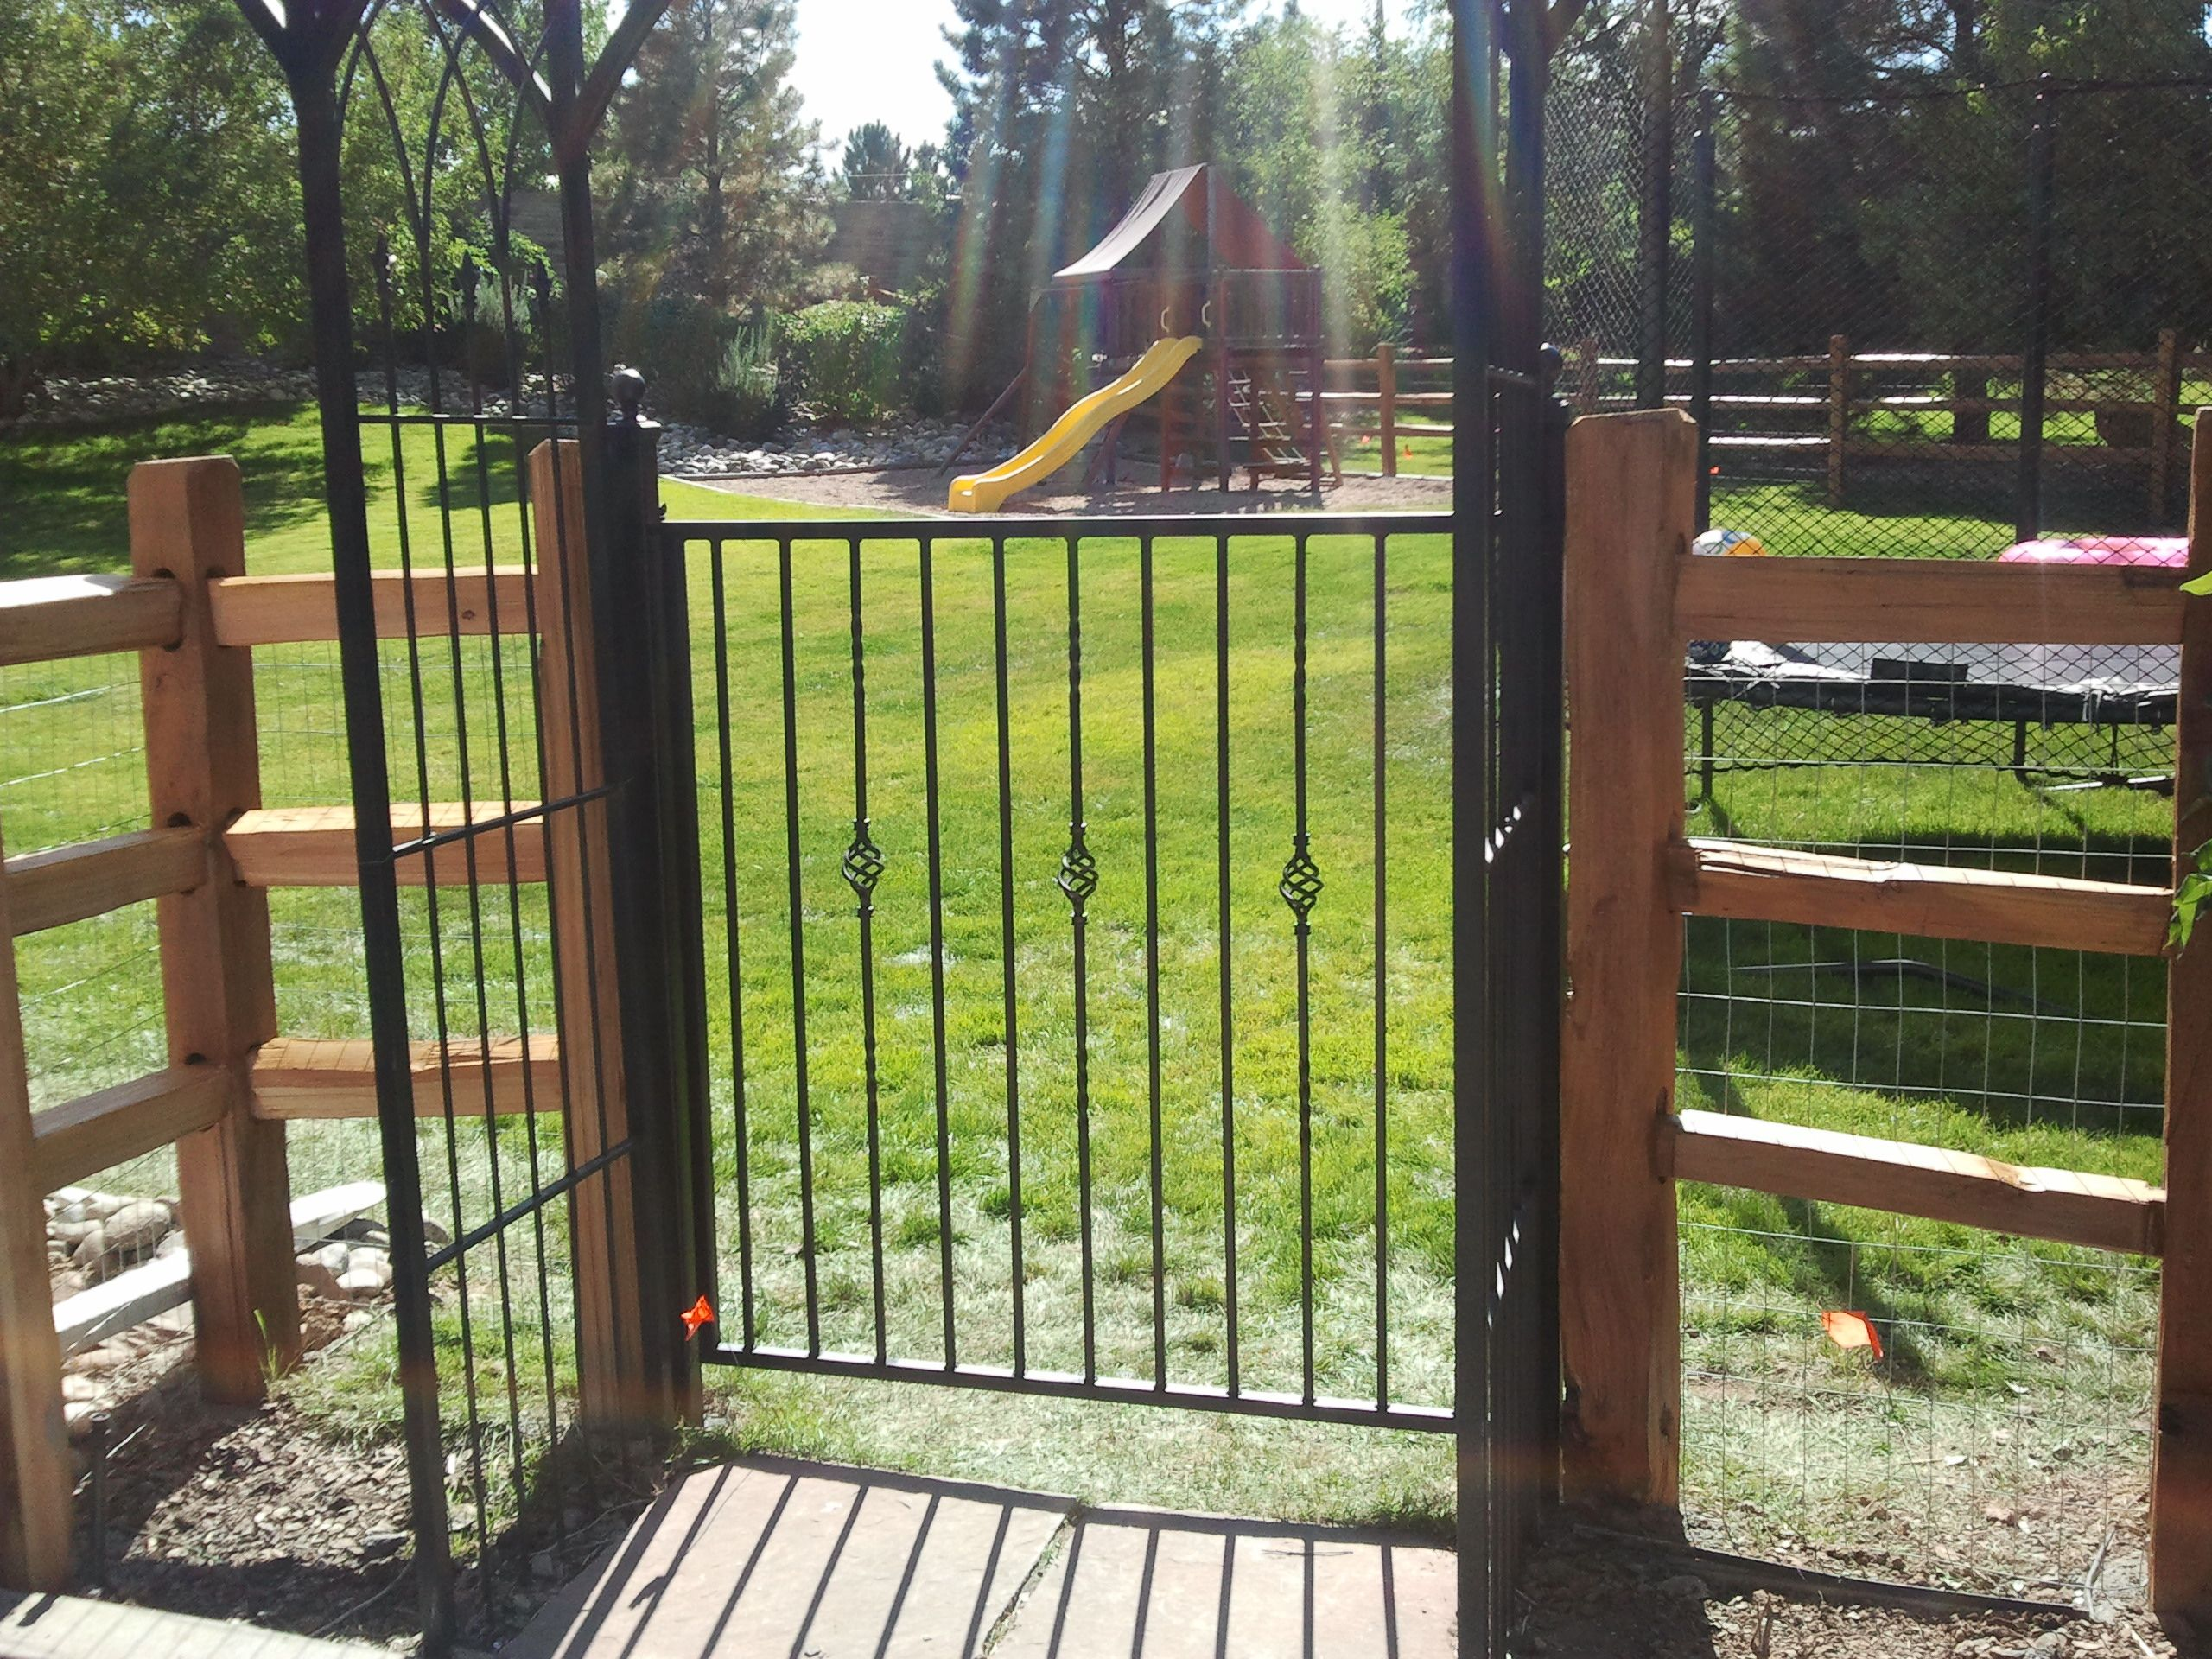 rail fence styles. The Price Per Foot On This Fence Style Makes It Very Attractive To Most Customers. Rail Styles